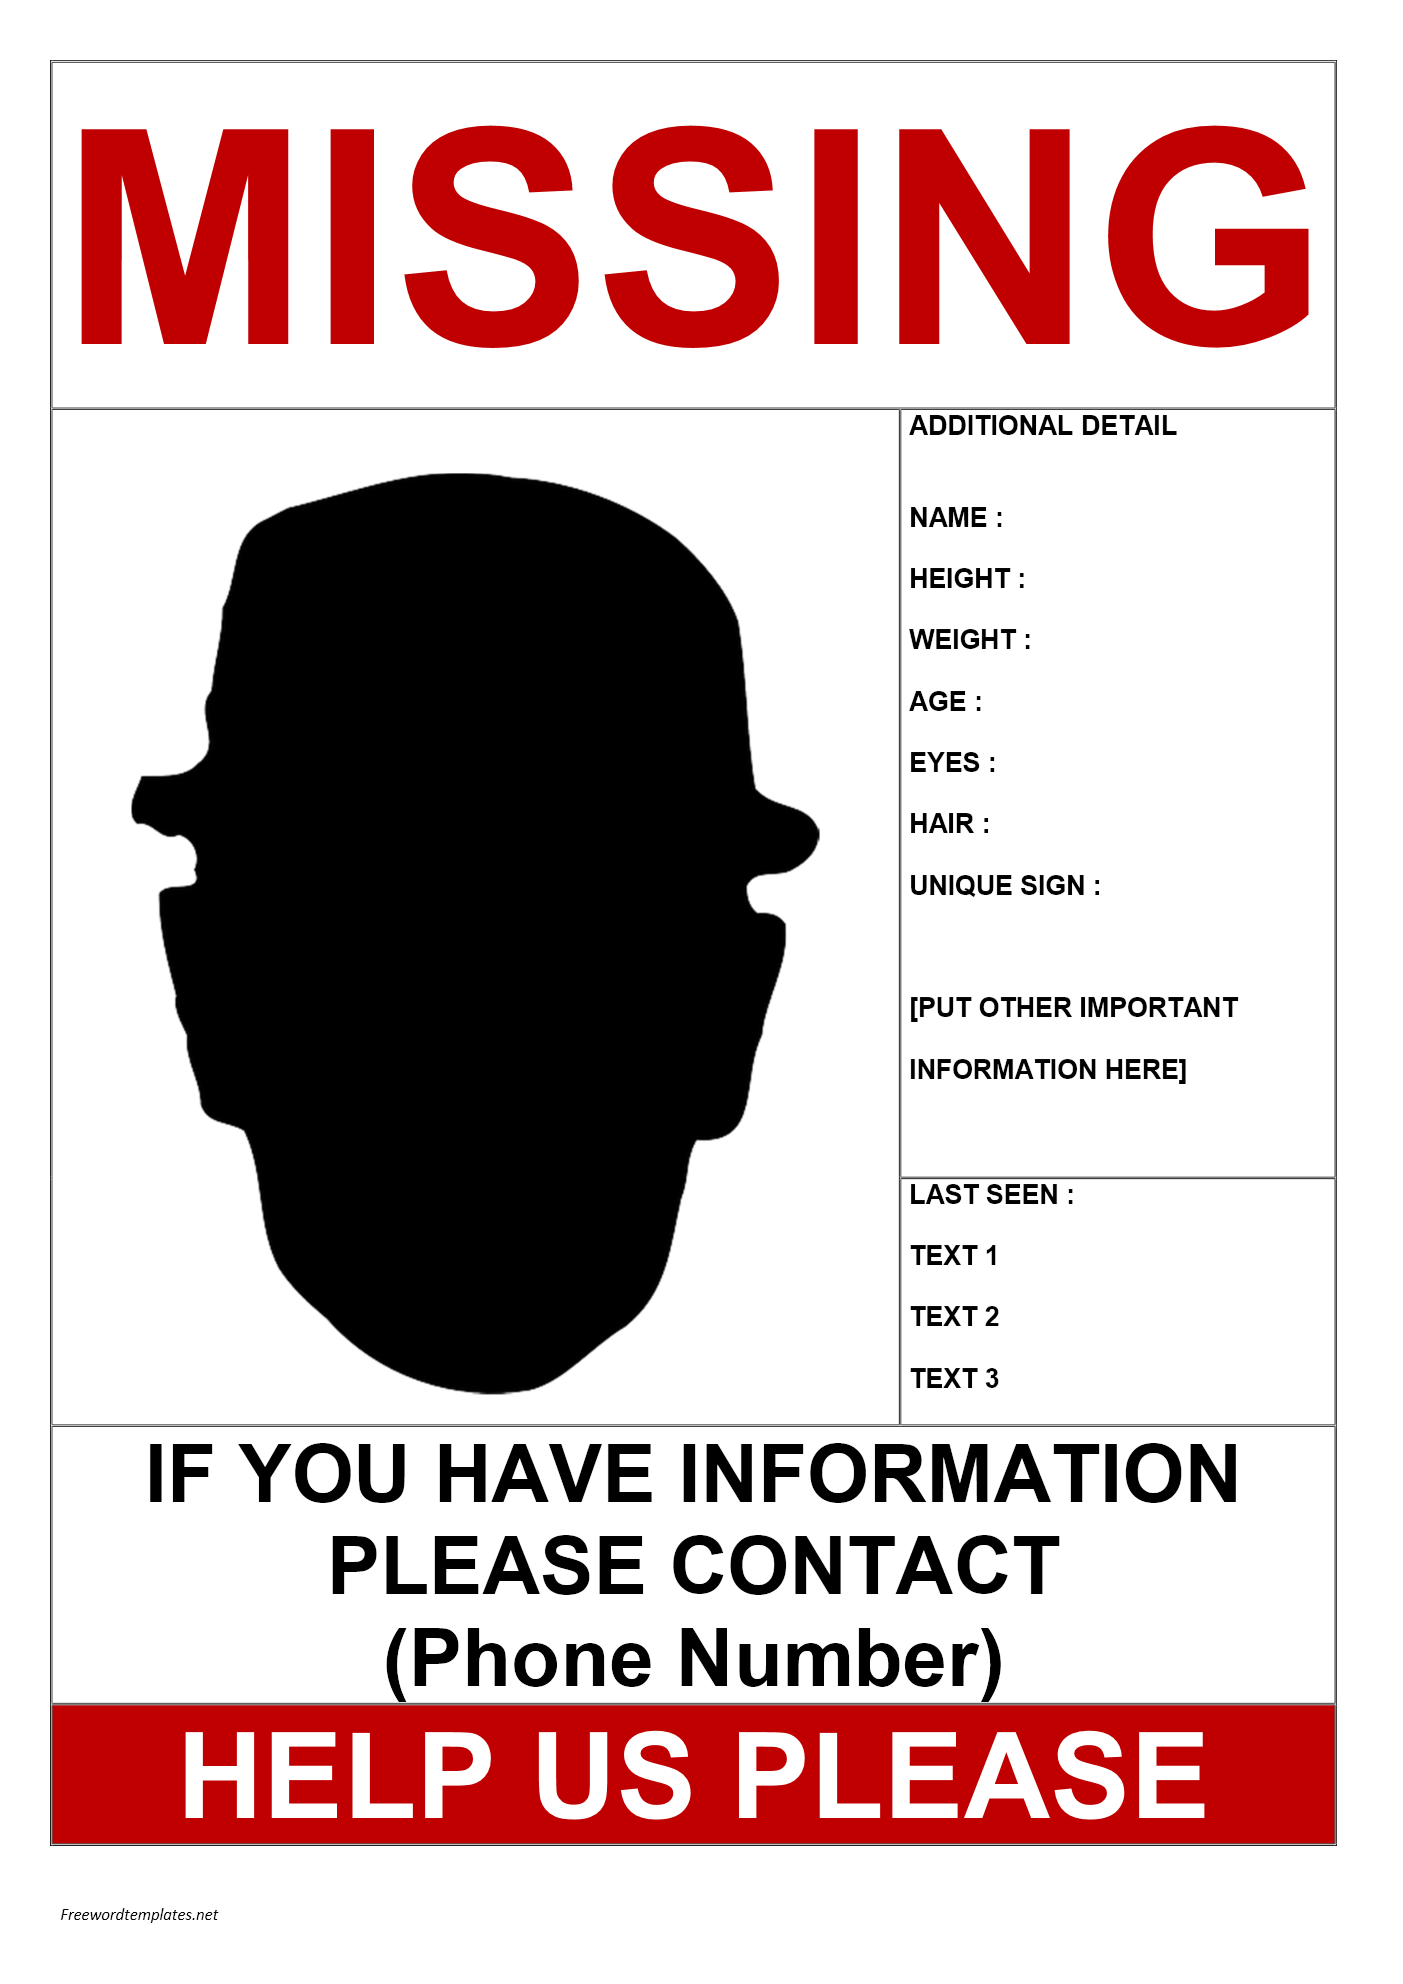 Missing Person Poster Template – Make a Missing Poster